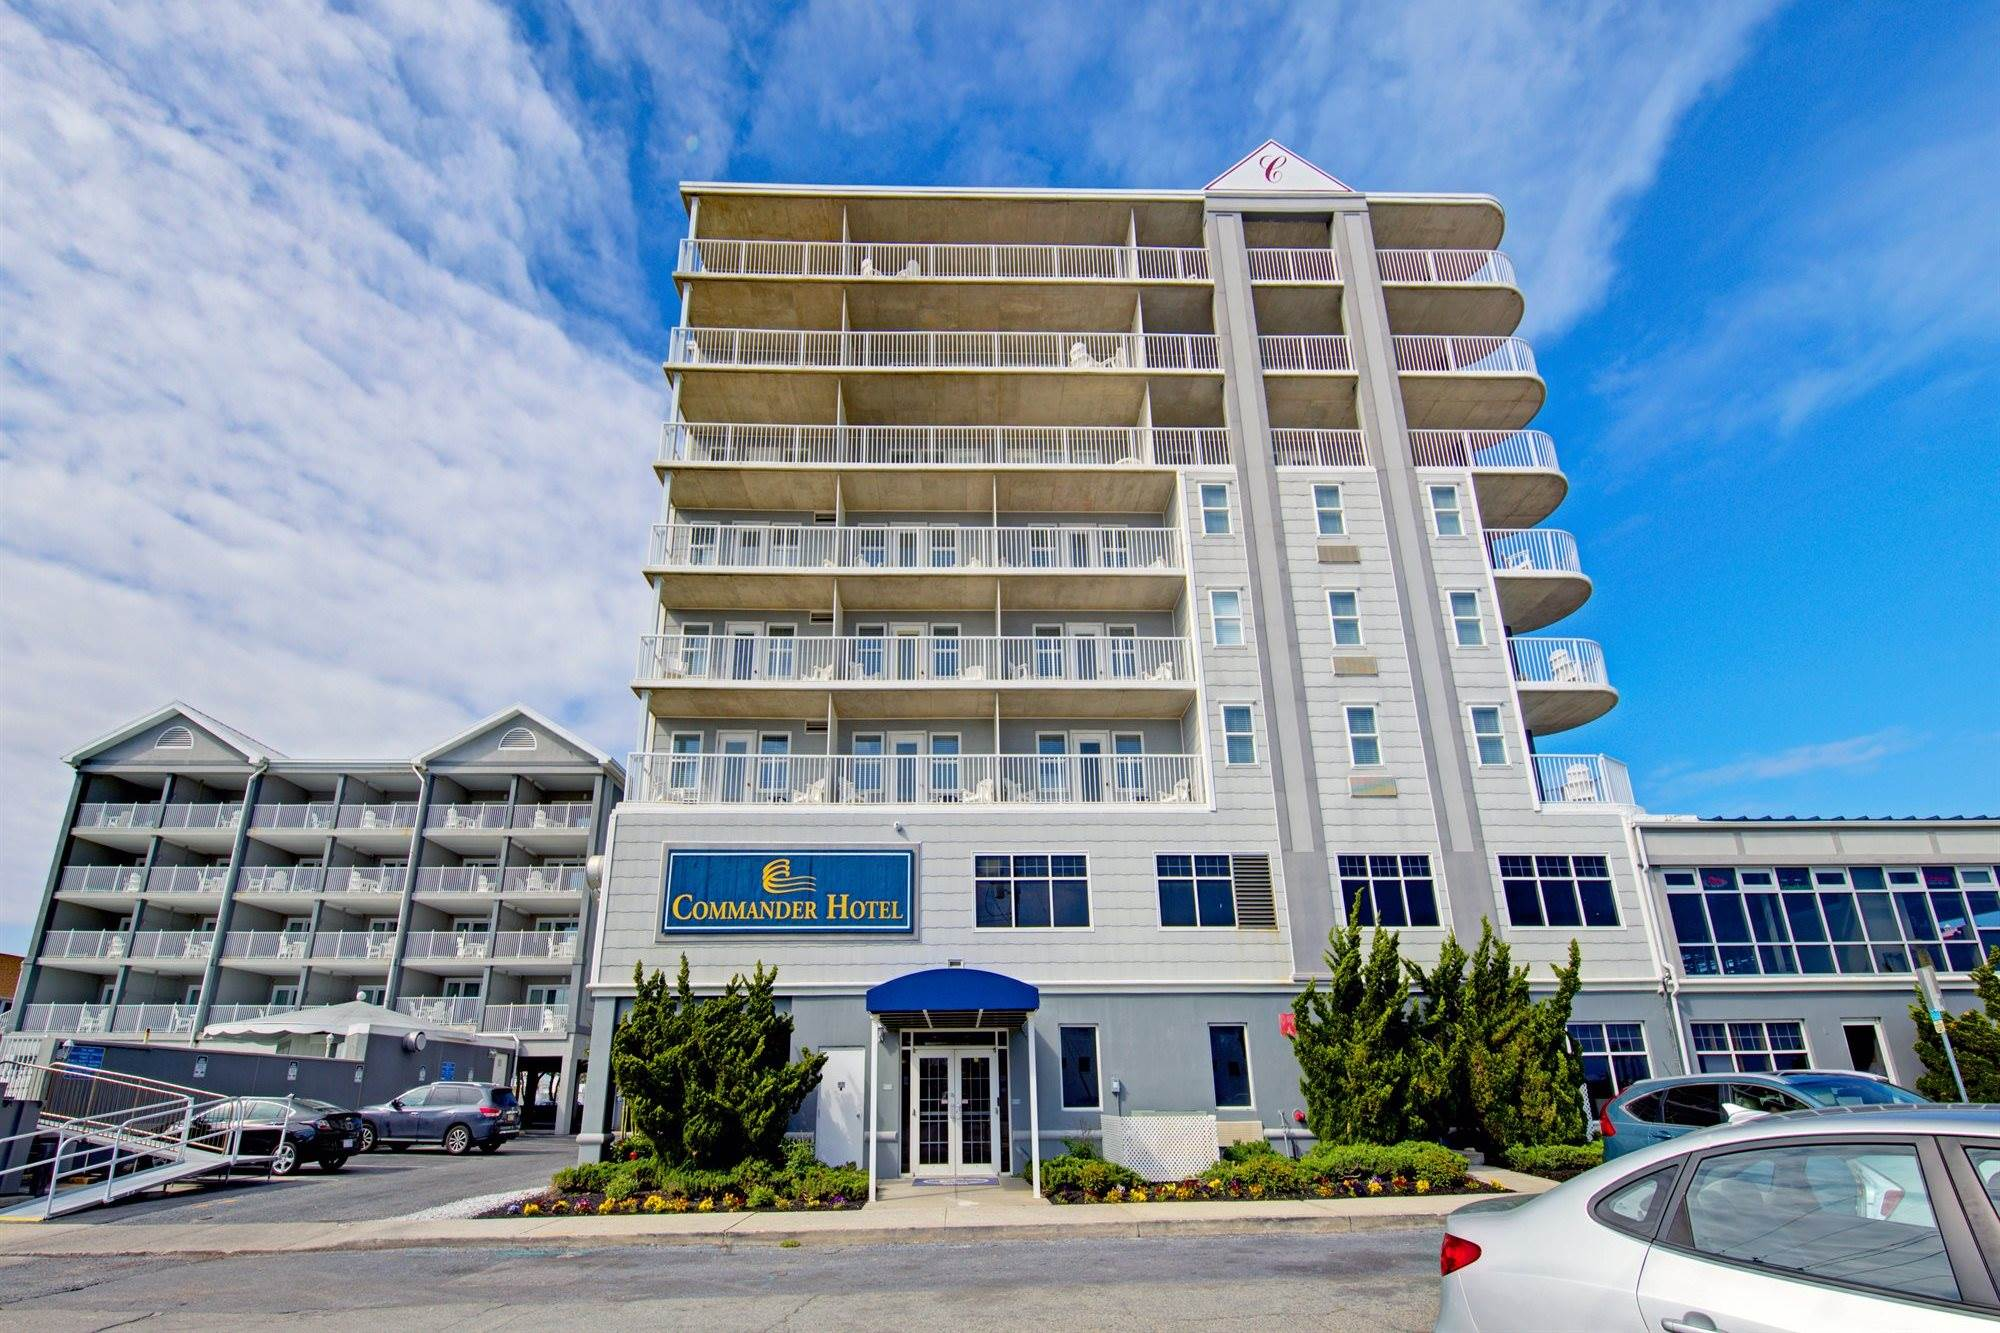 Commander Hotel in Ocean City, Maryland - Exterior View